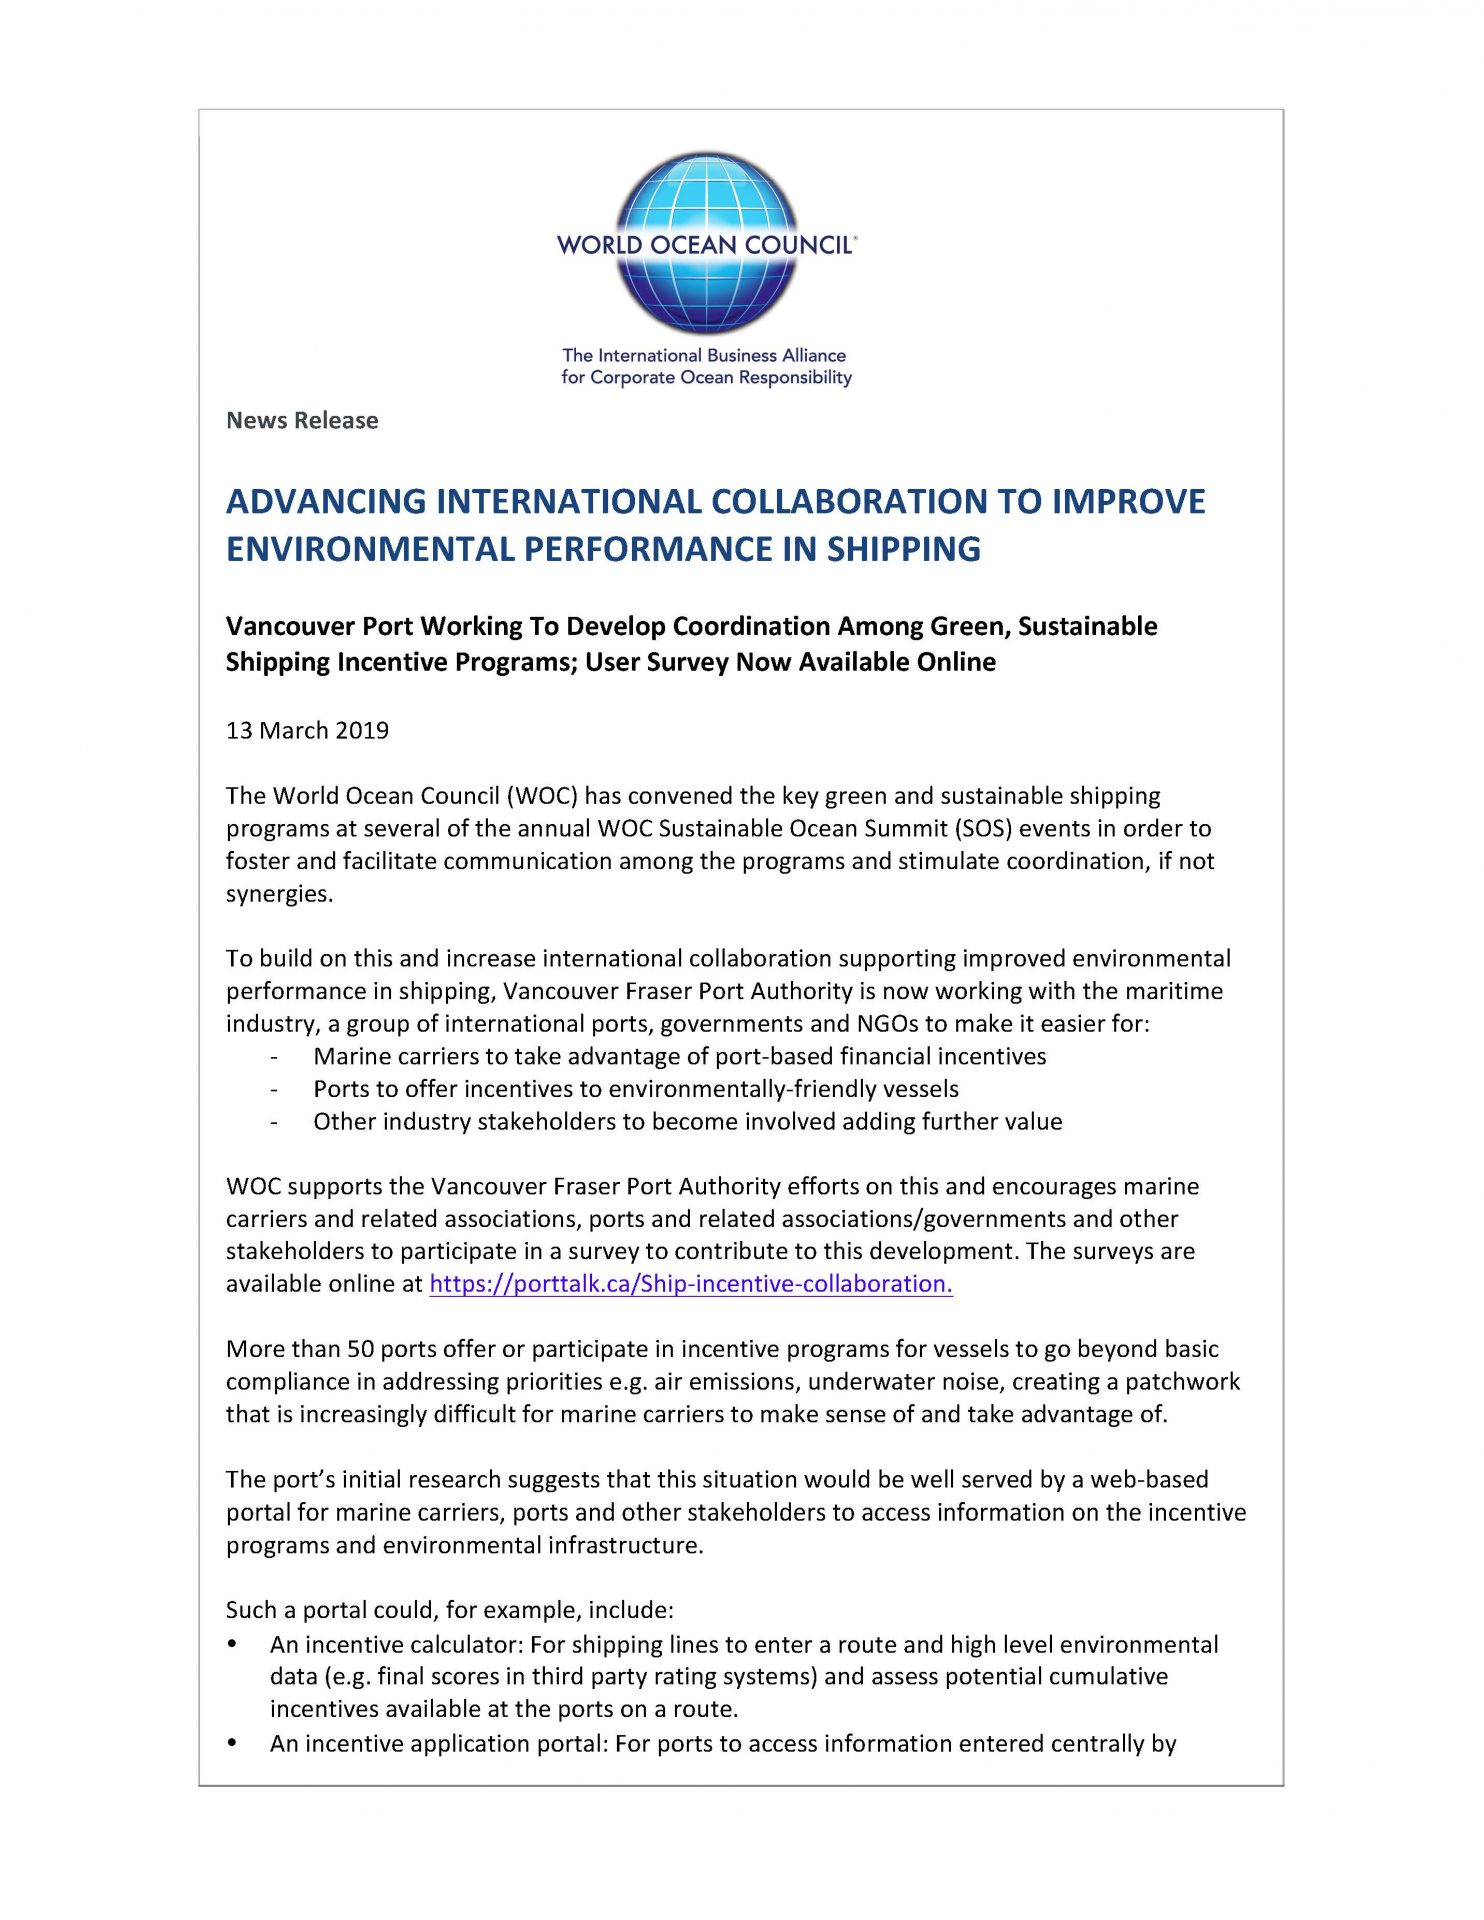 Advancing International Collaboration to Improve Environmental Performance in Shipping - 13 March 2019